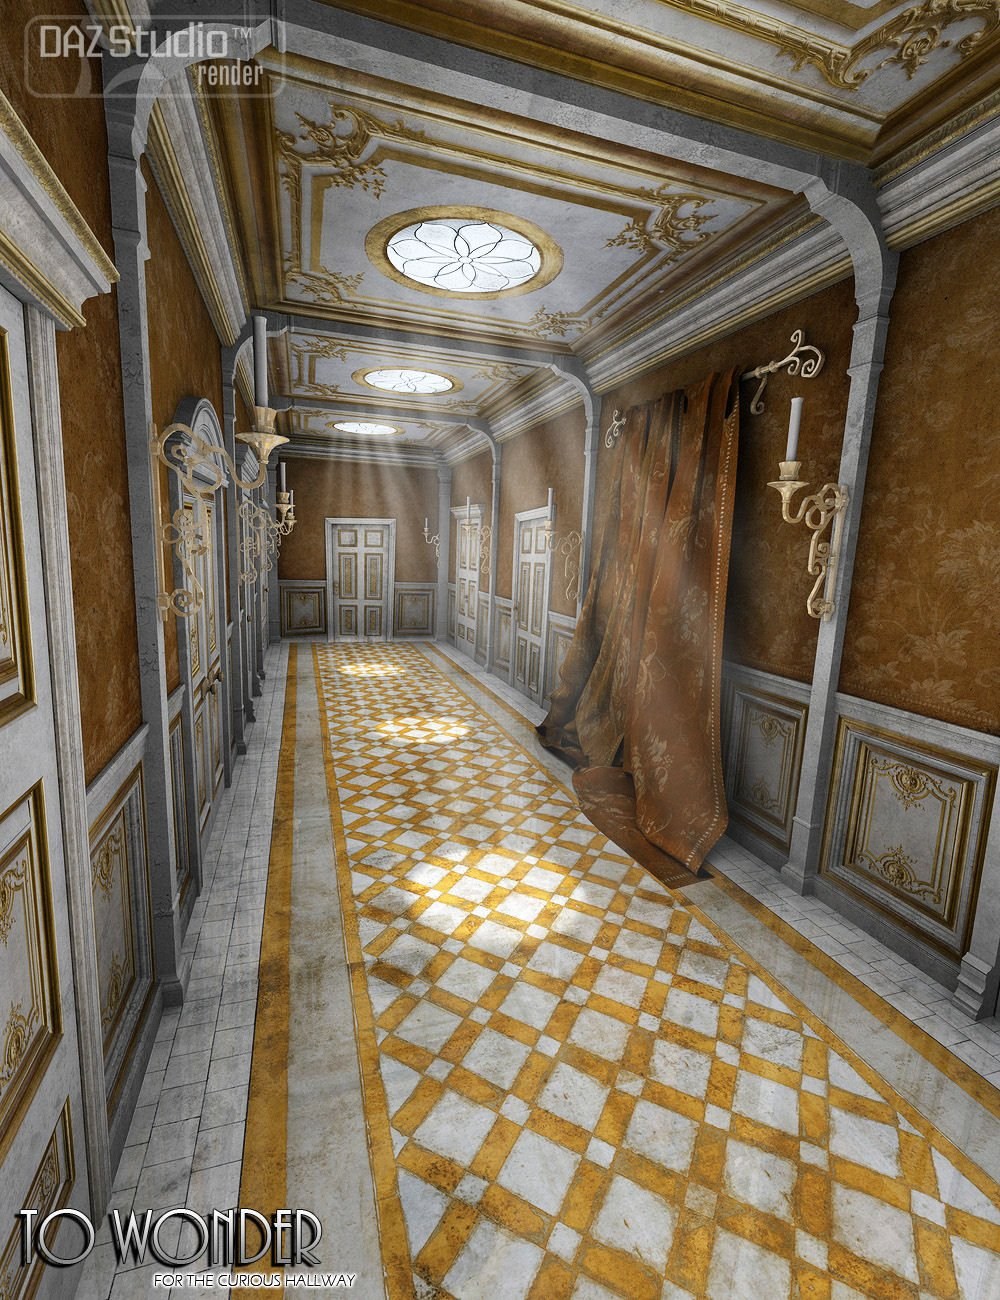 To Wonder for A Curious Hallway by: ForbiddenWhispers, 3D Models by Daz 3D